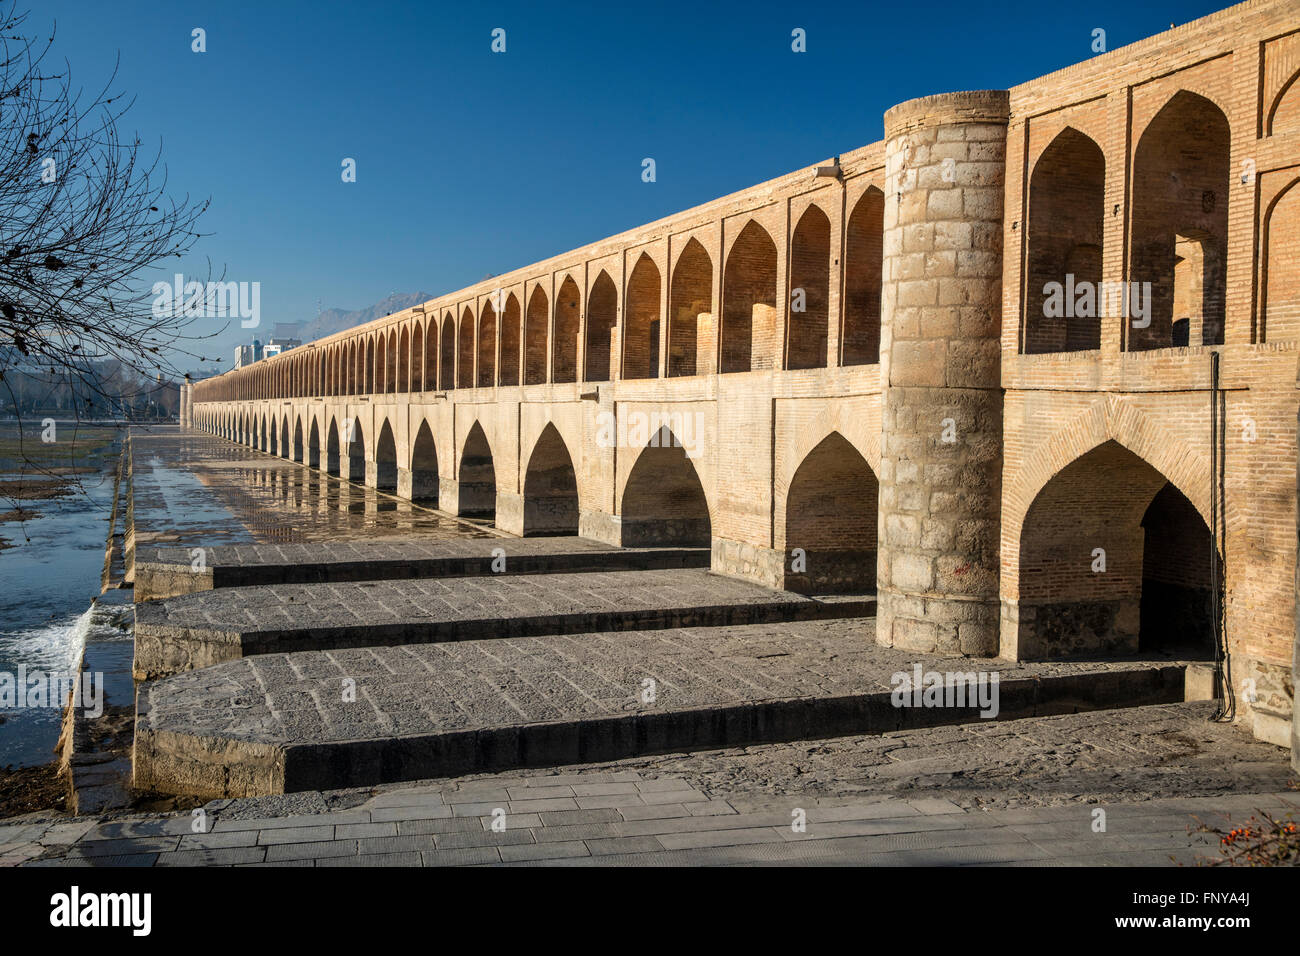 Early morning view of Allahverdi Khan Bridge (Se-o-se Pol, 33 Arches Bridge) over the Zayandeh River, Isfahan, Iran. - Stock Image